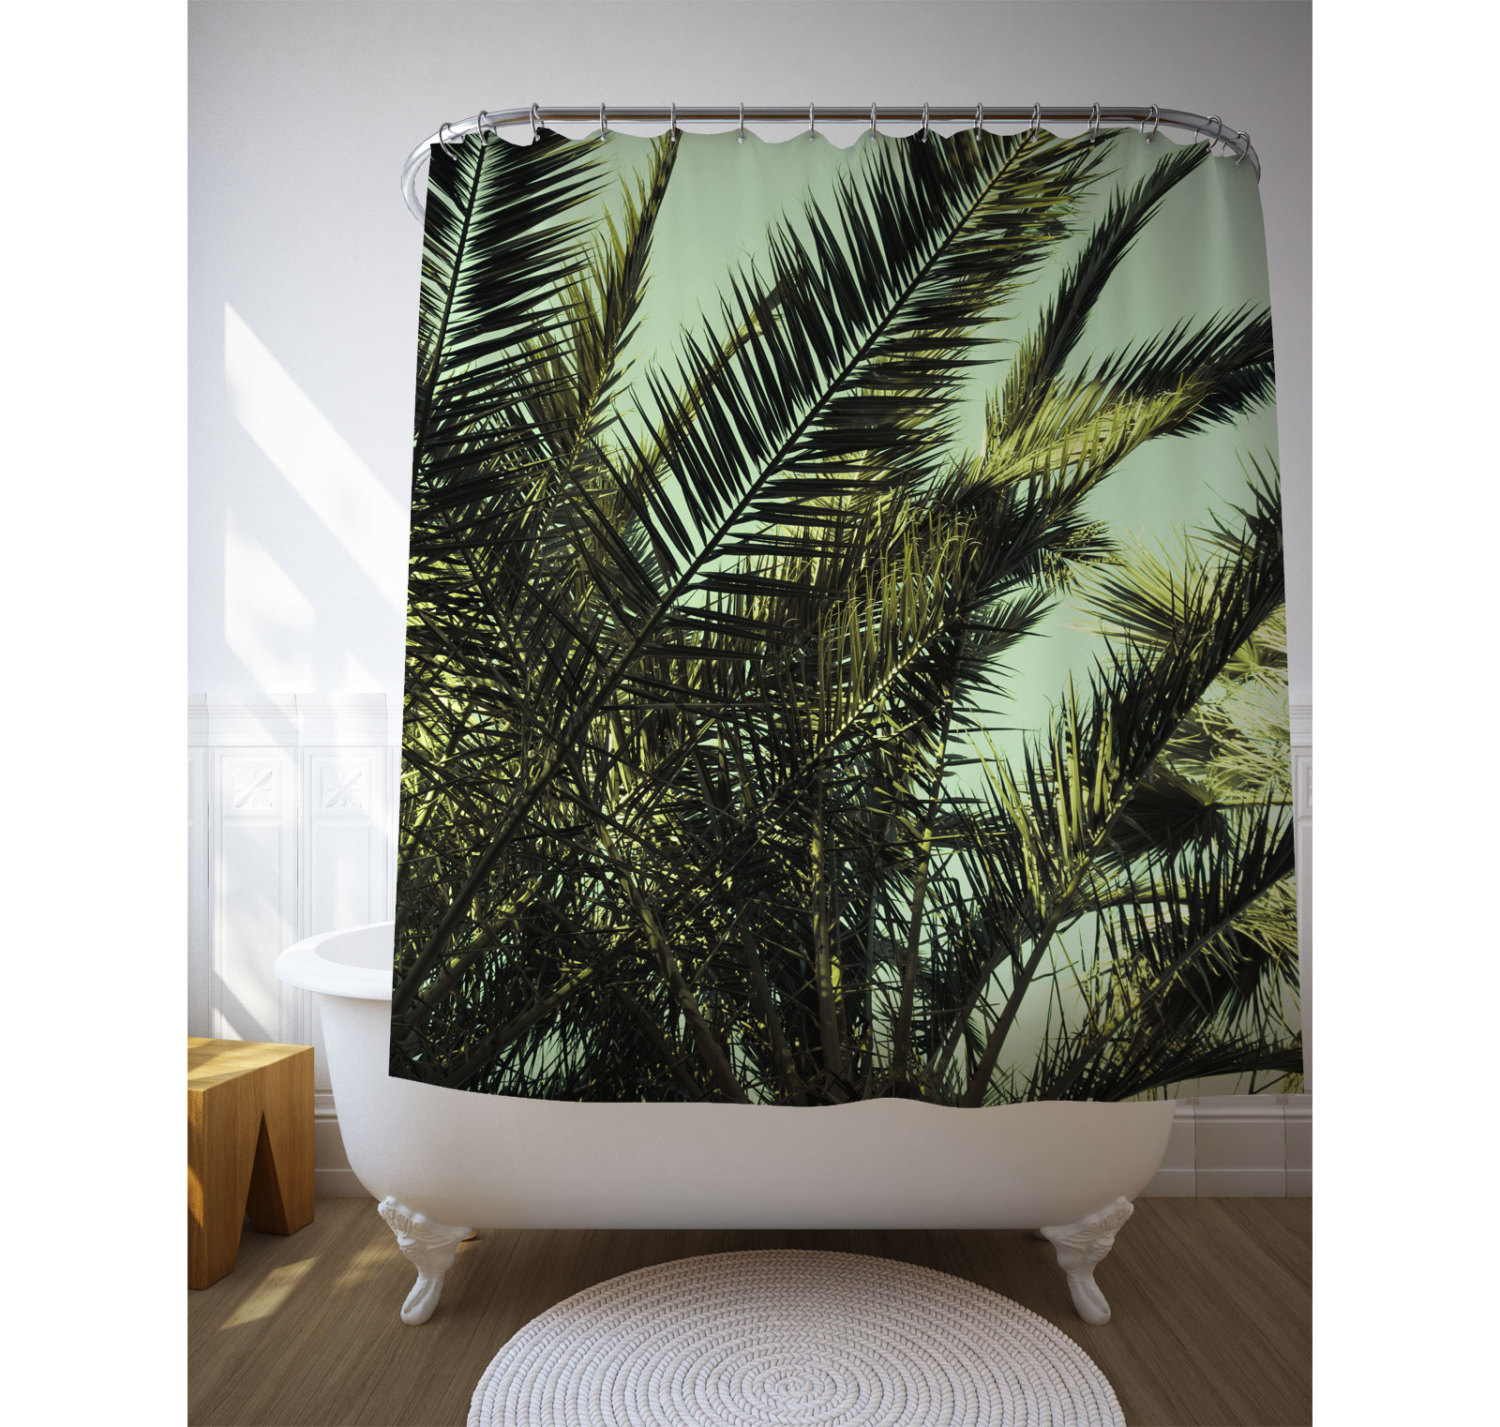 Palm Leaf Shower Curtain Bath Accessories Tropical throughout sizing 1500 X 1427